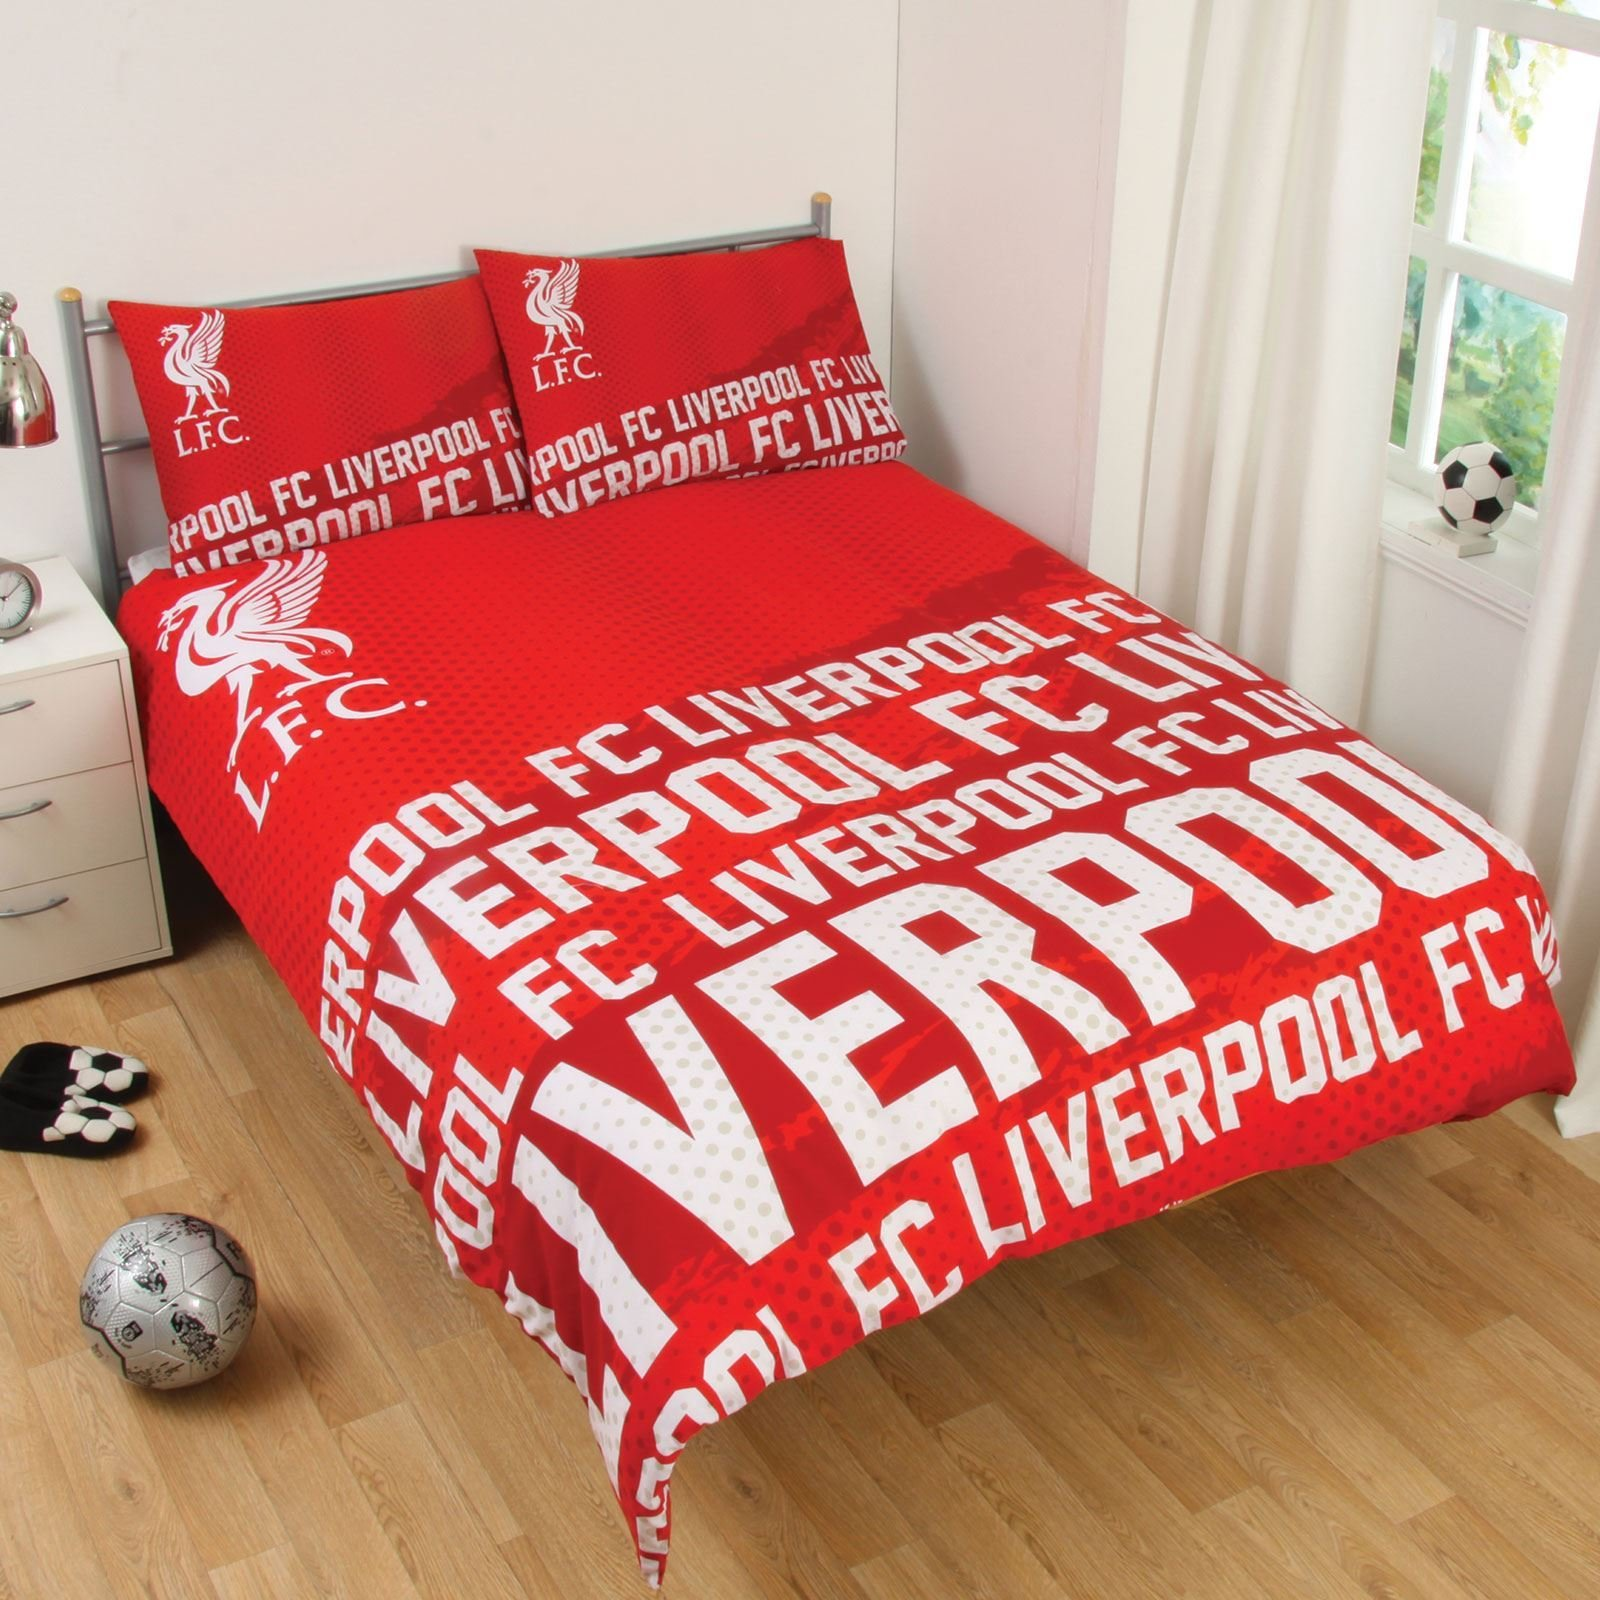 Best Liverpool Fc Single And Double Duvet Cover Sets Bedroom Bedding Free P P Ebay With Pictures